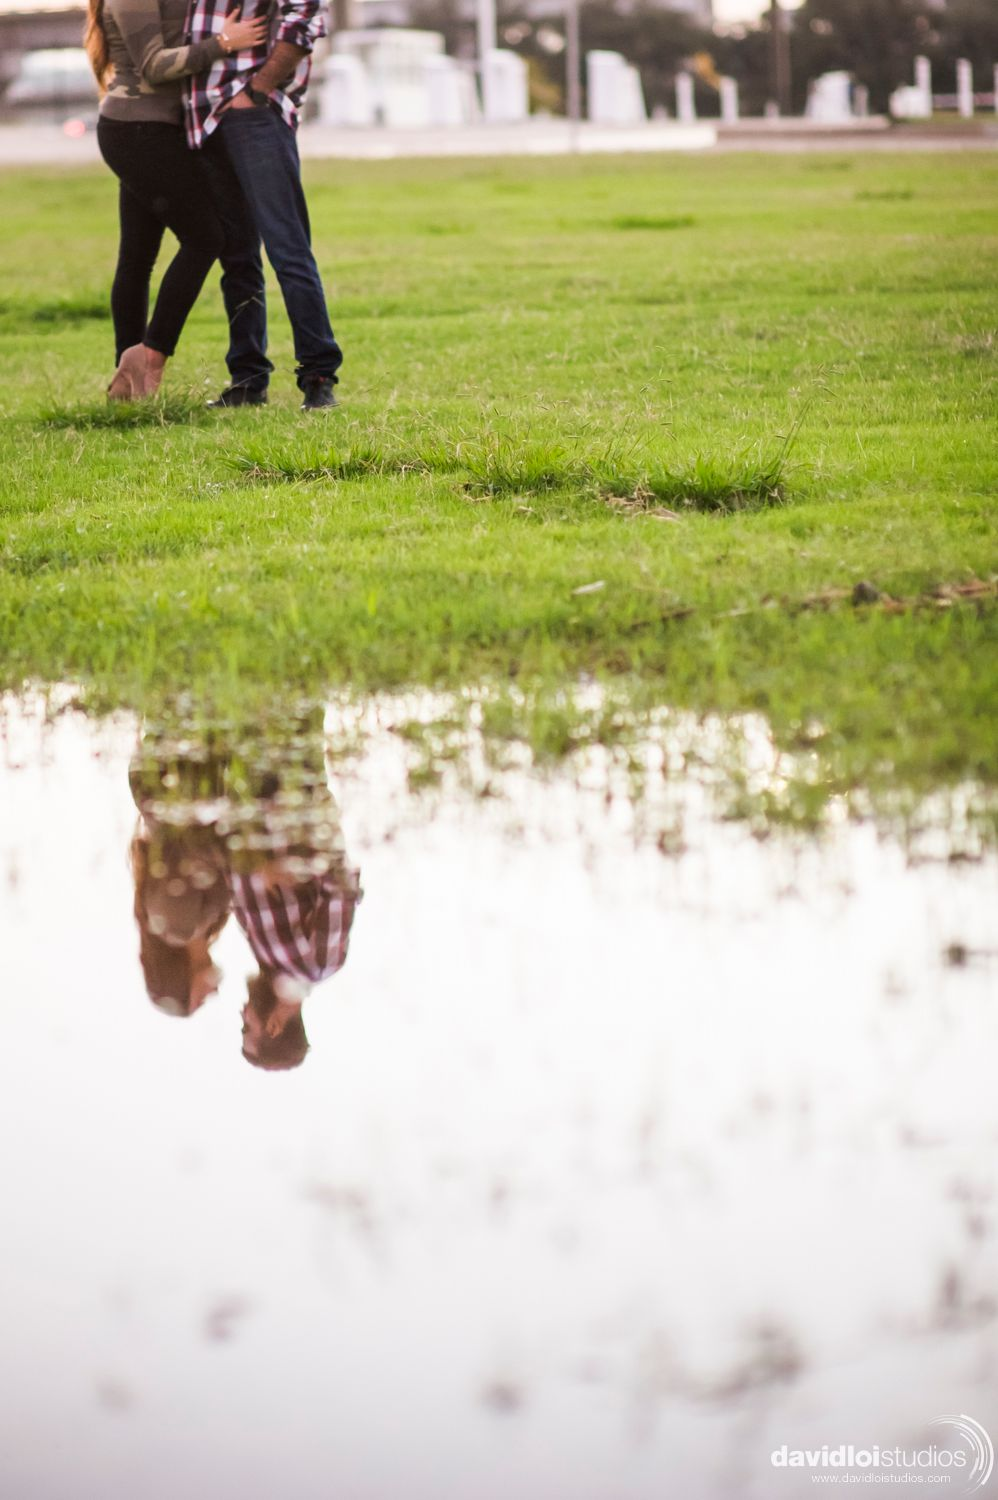 508 Park Engagement Session Dallas TX - 13.jpg